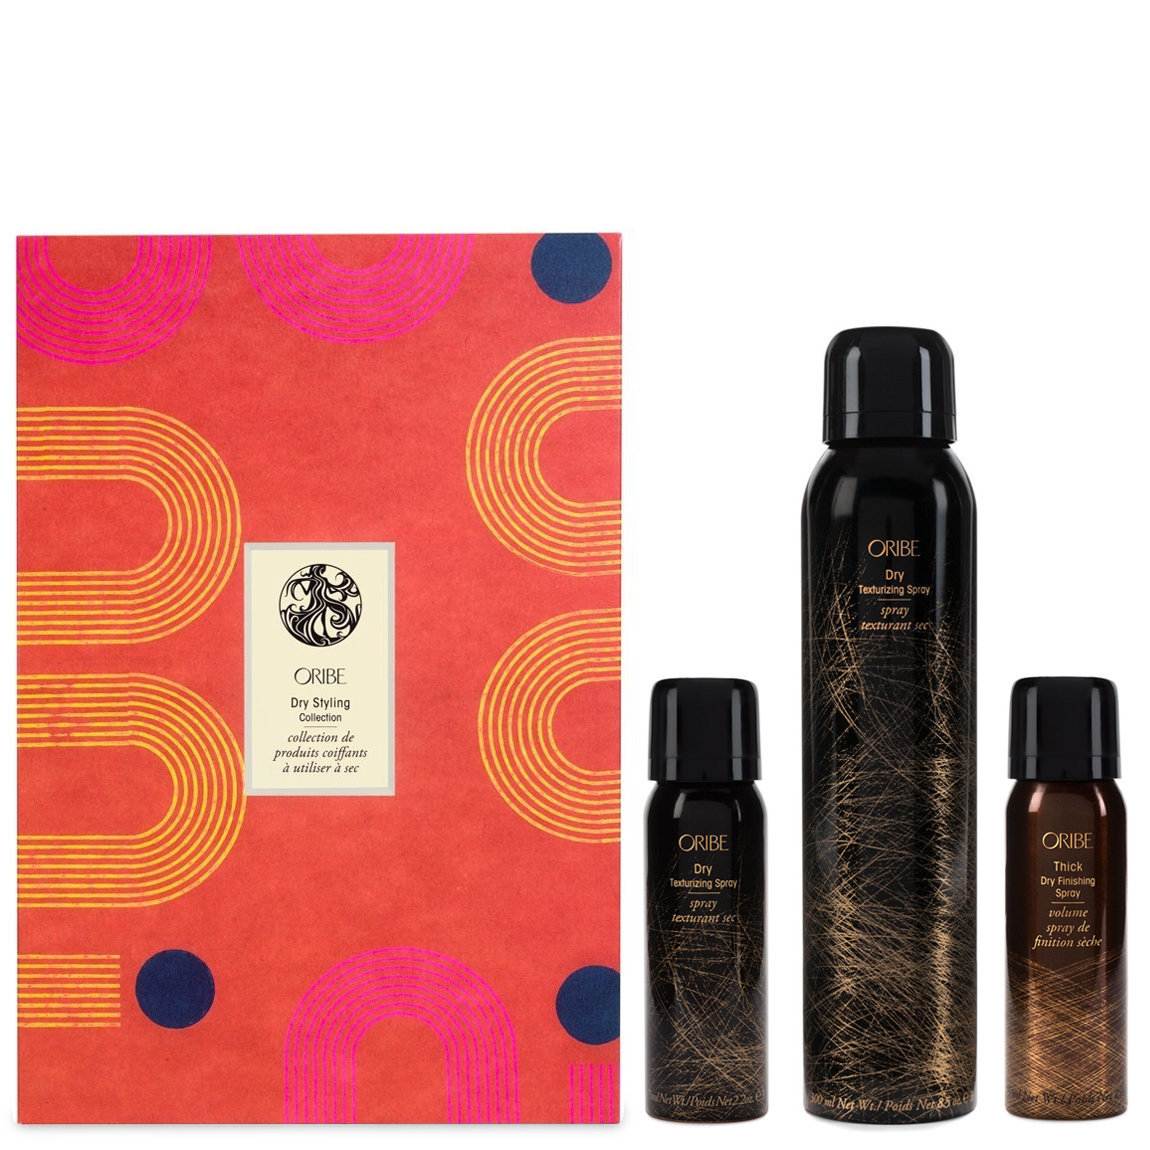 Oribe Dry Styling Collection product swatch.